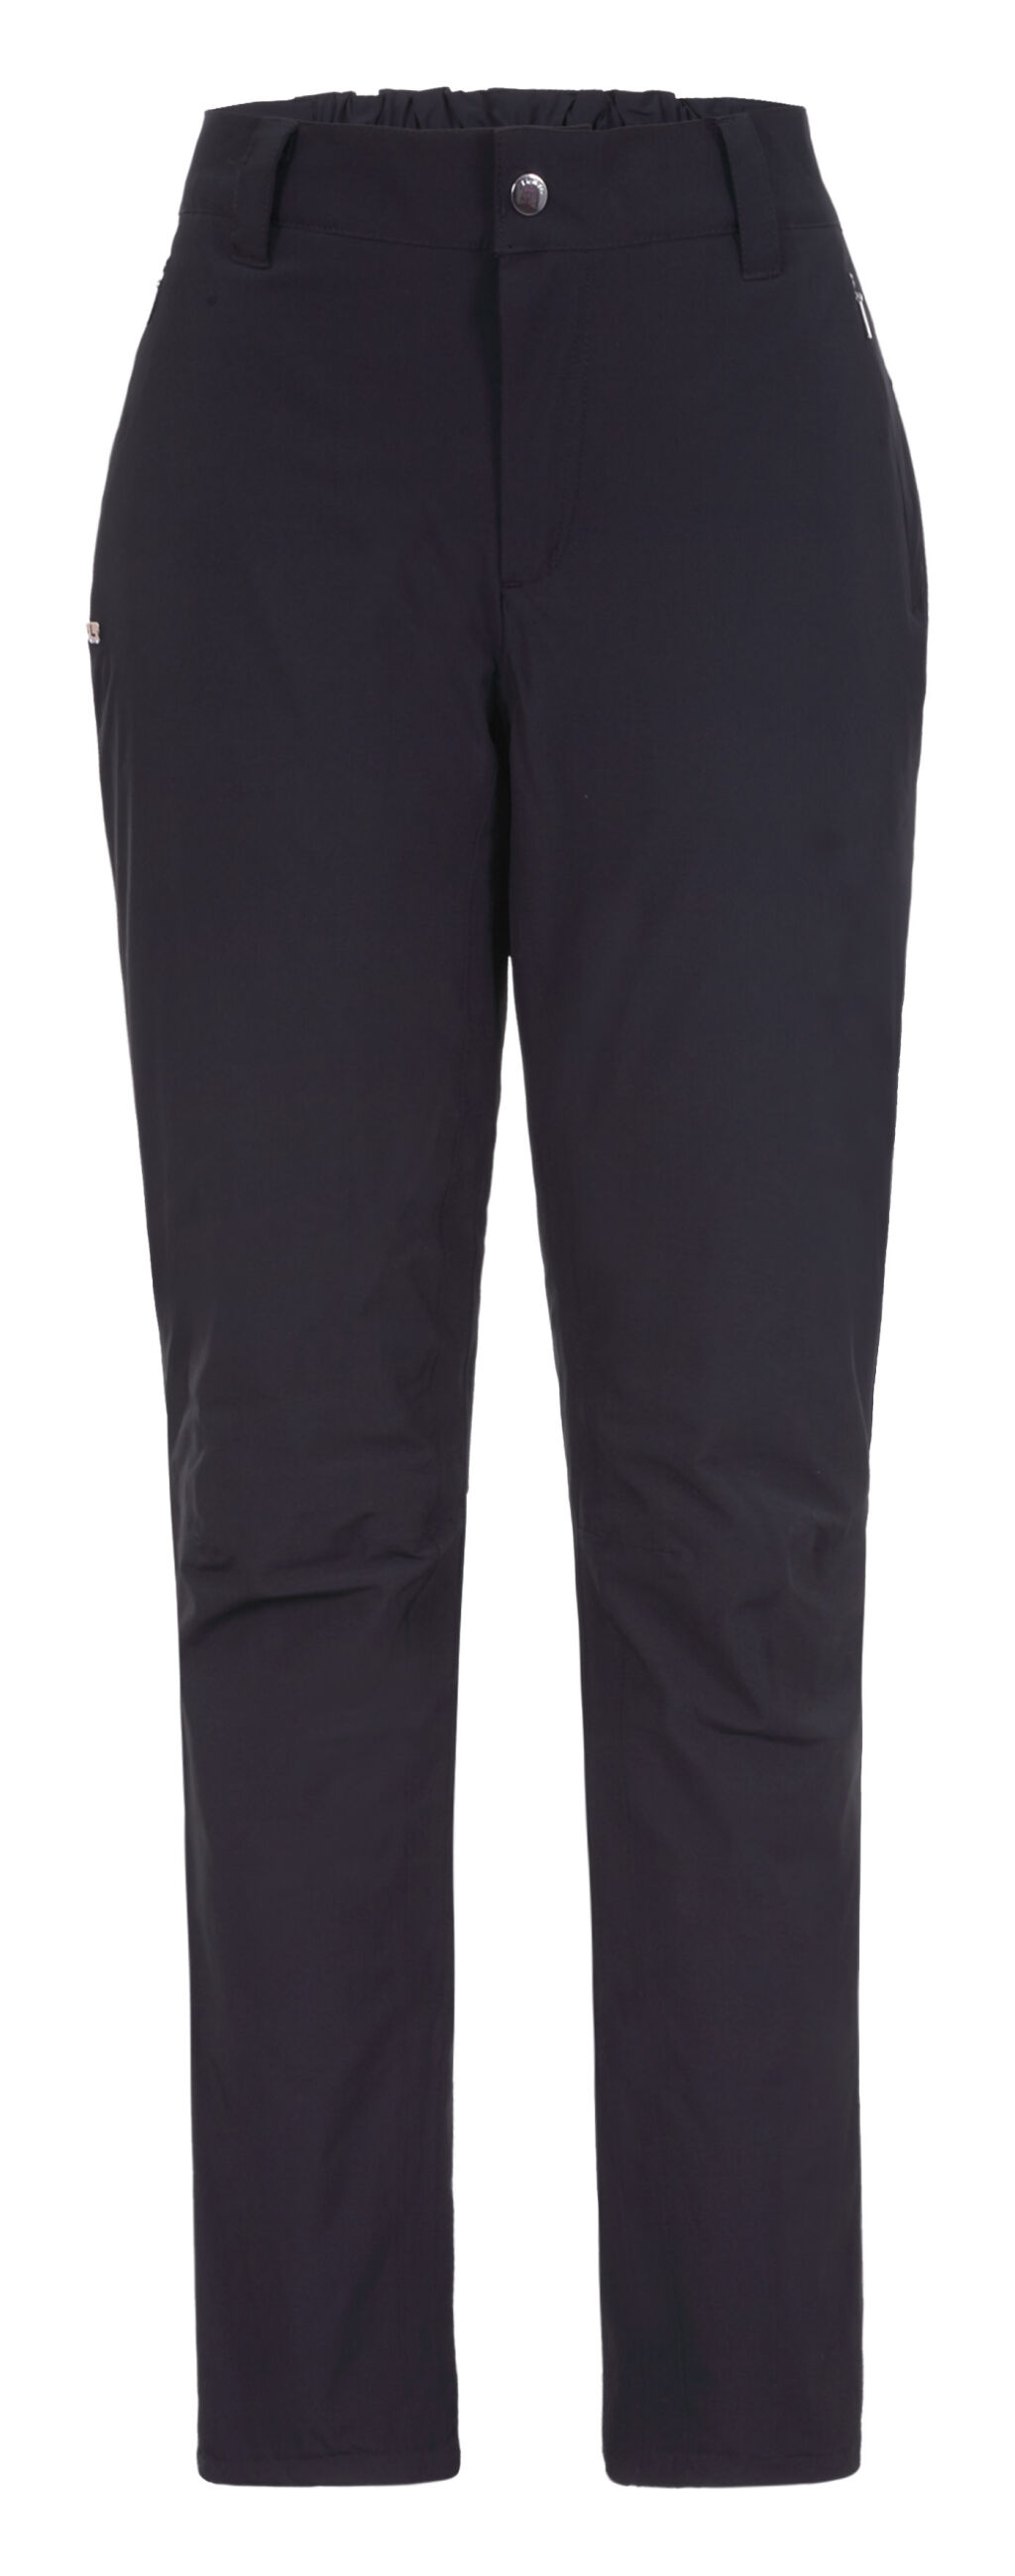 Luhta Eira D-fit Pants W